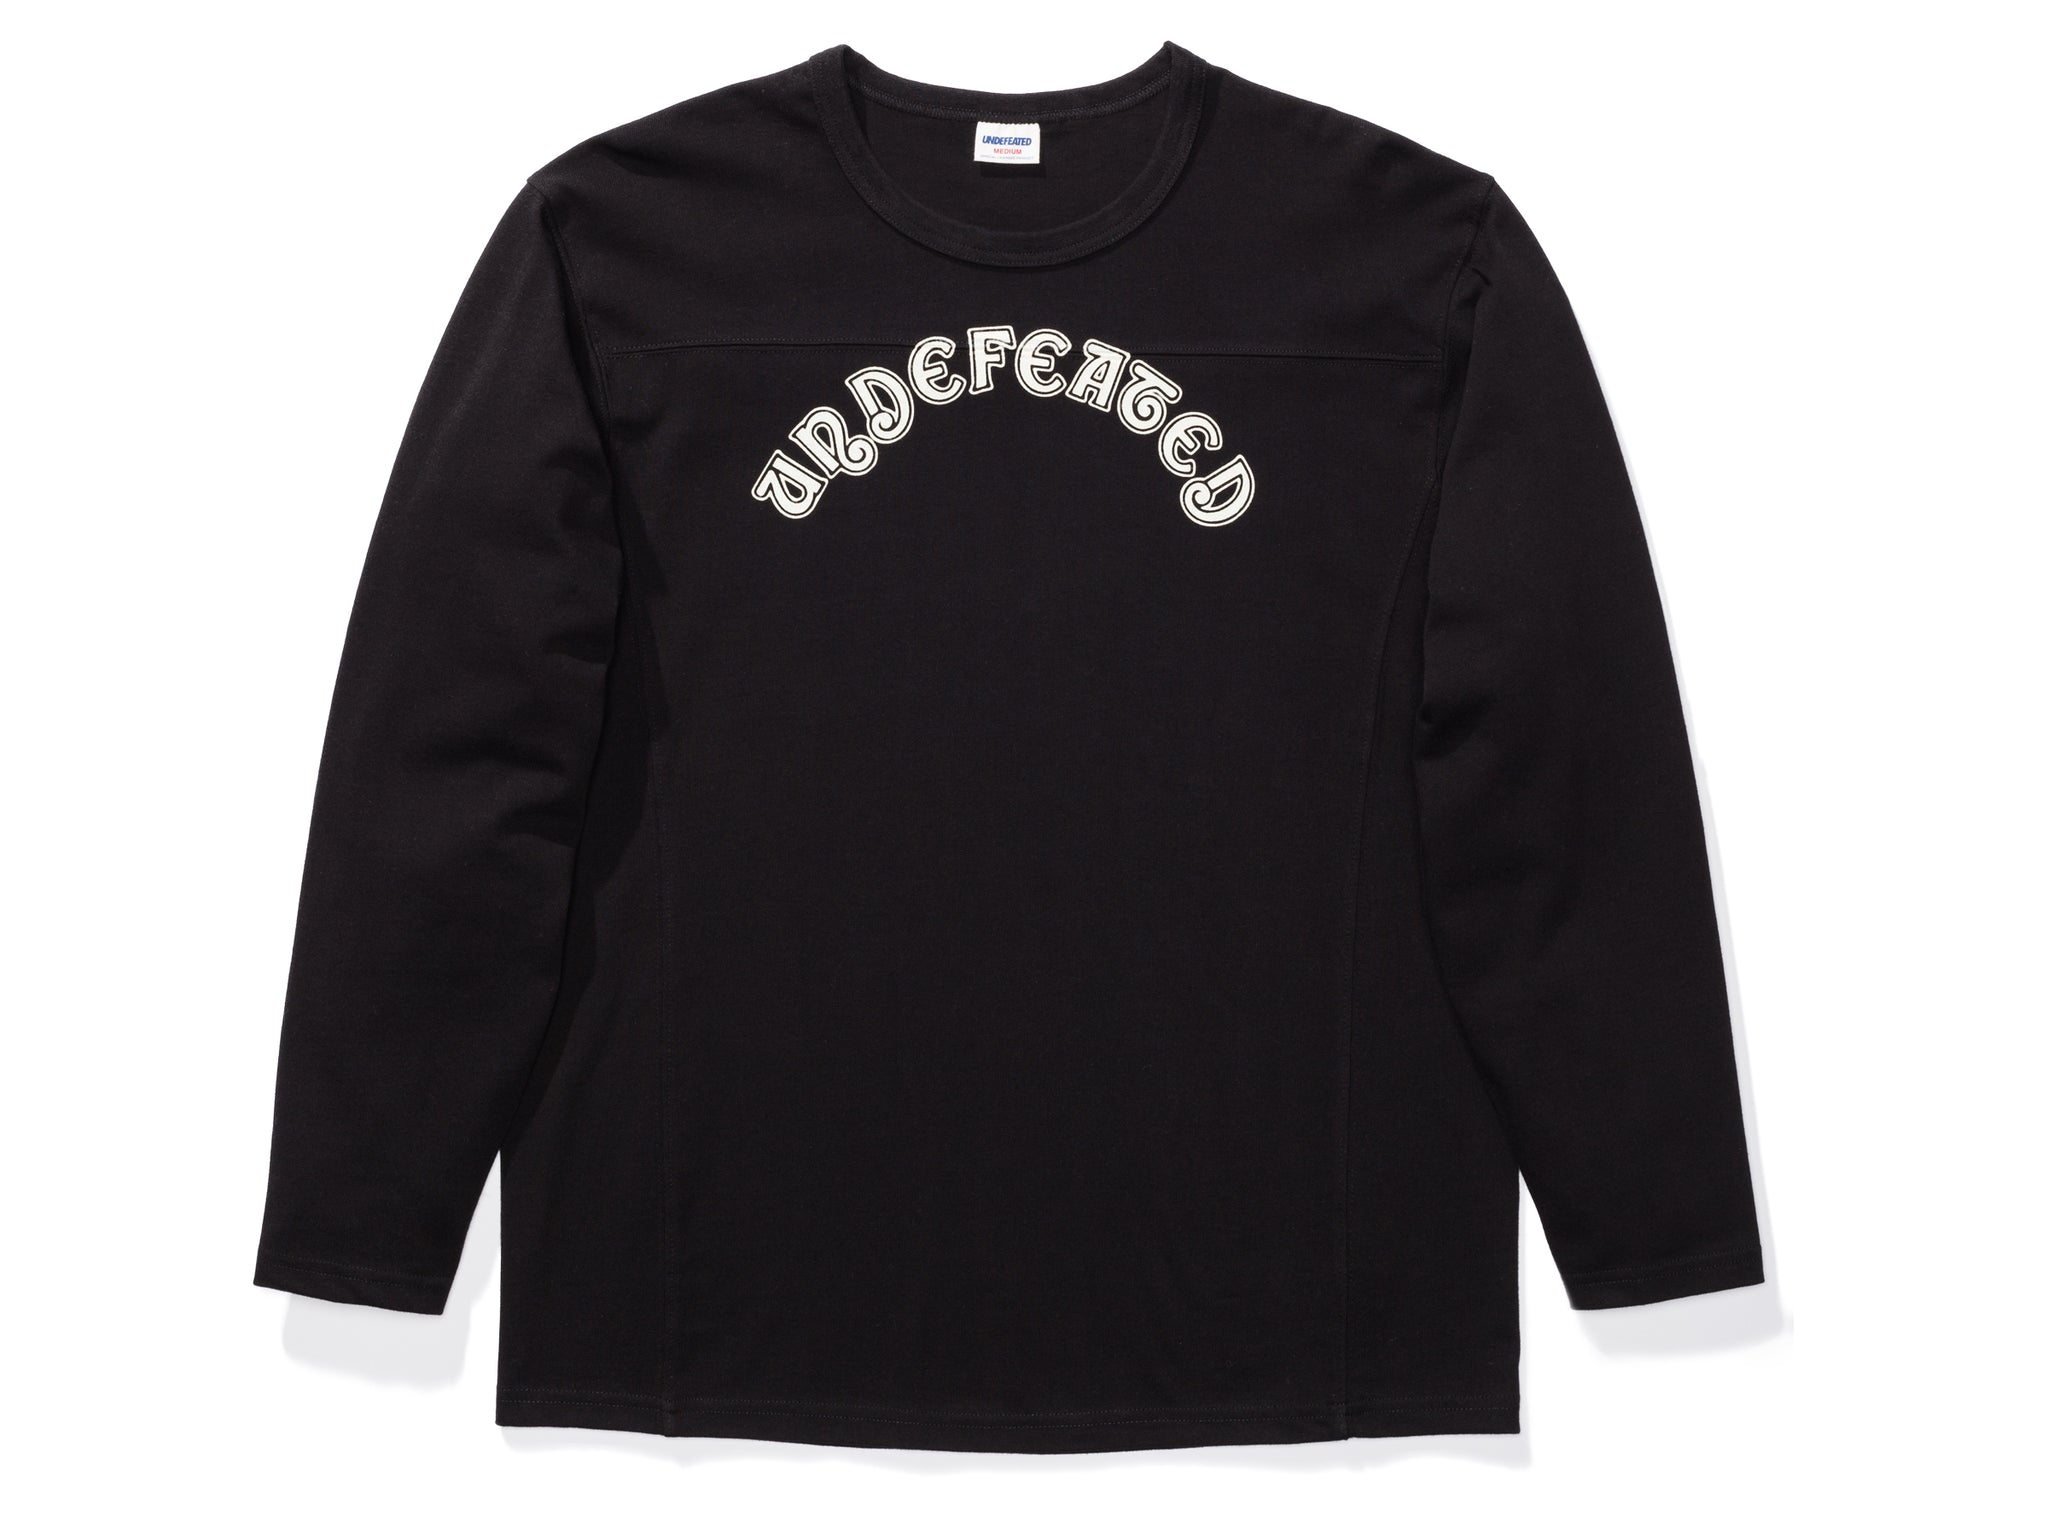 UNDEFEATED L/S FOOTBALL JERSEY - BLACK